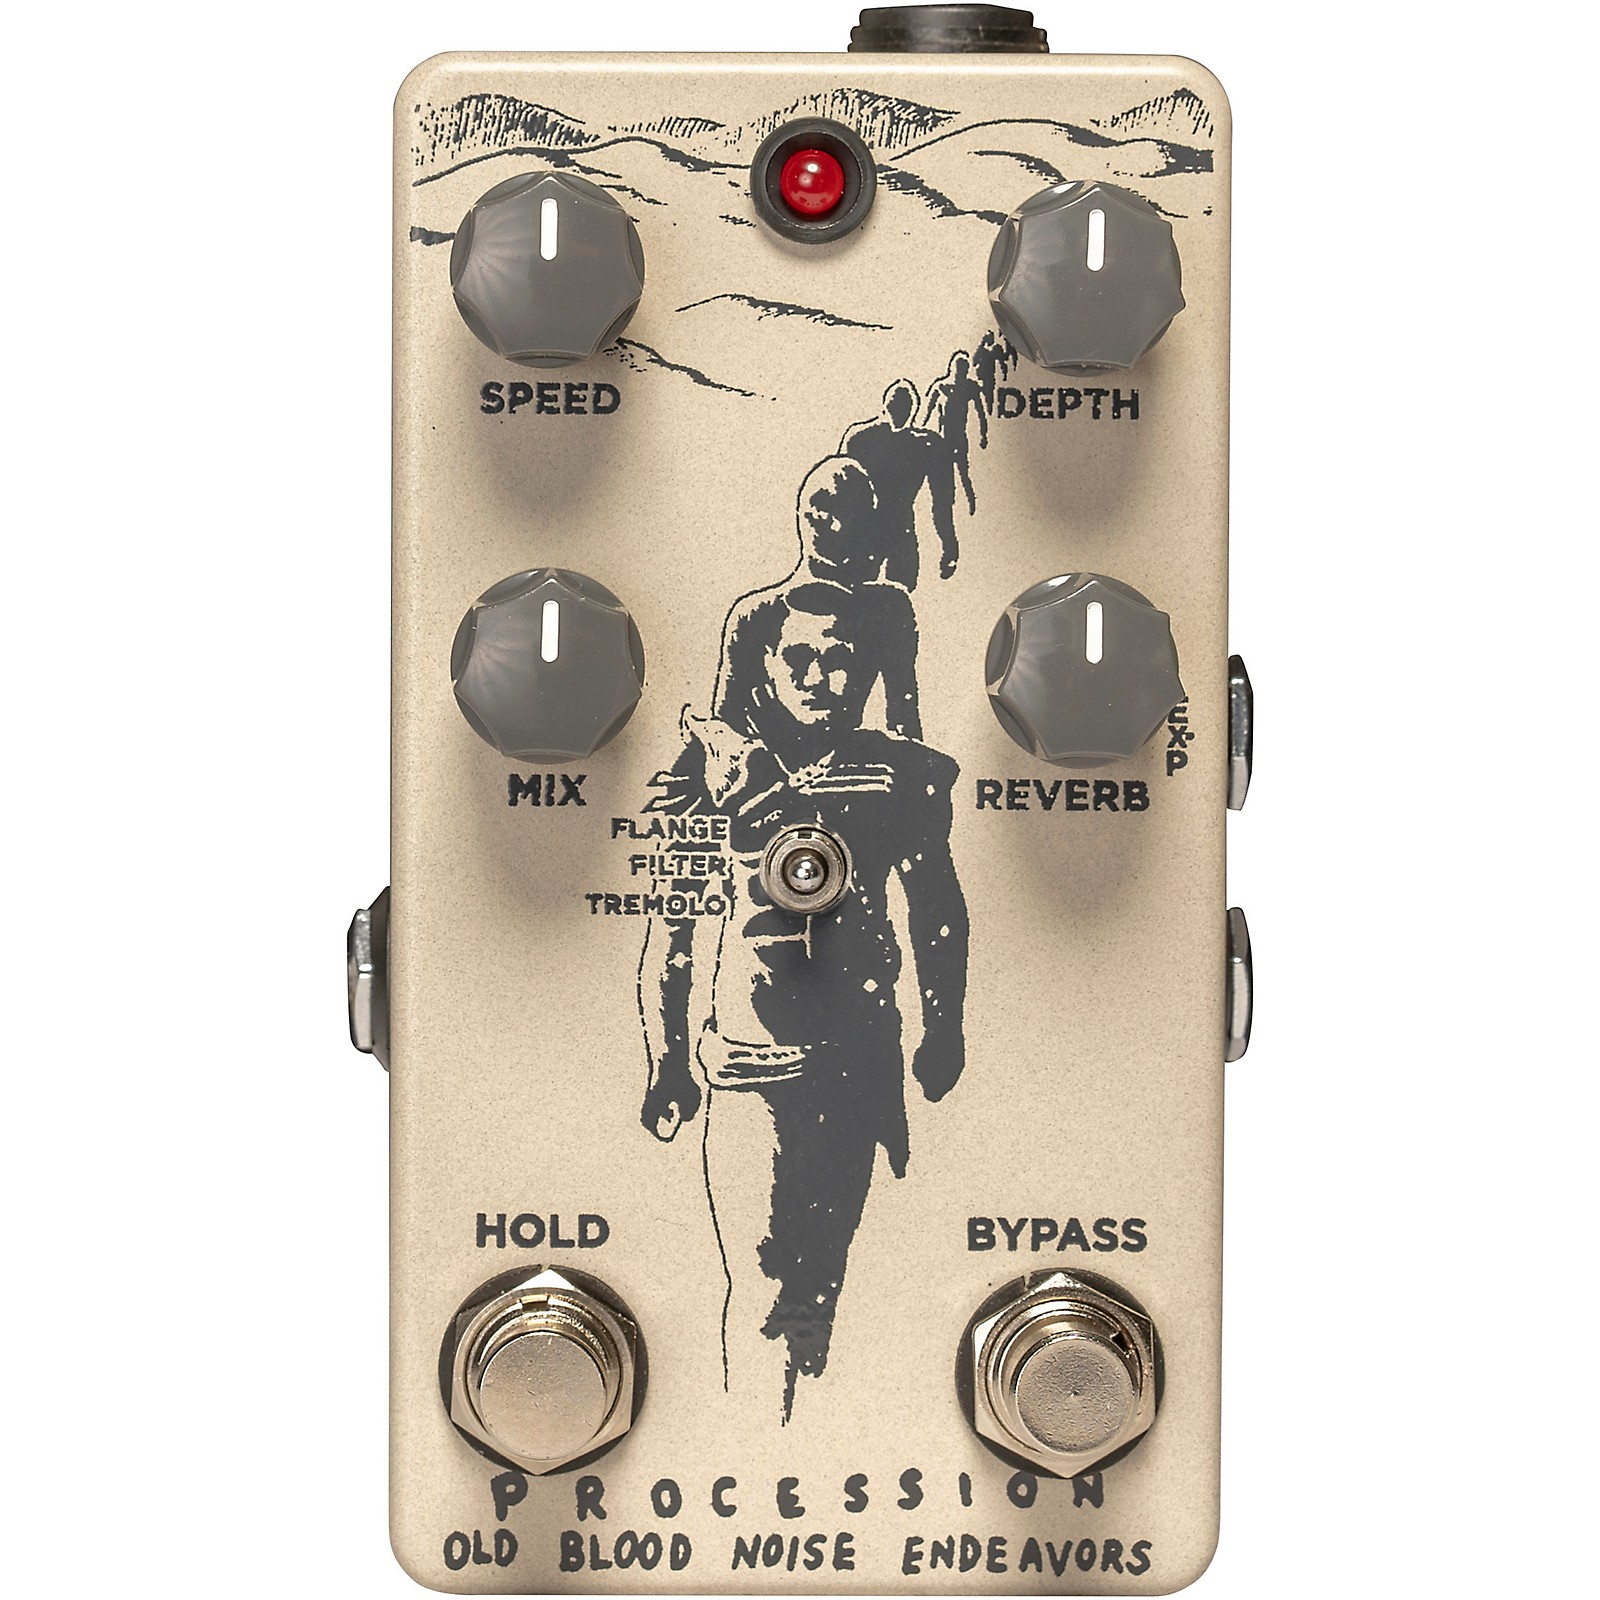 Old Blood Noise Endeavors Procession Reverb Effects Pedal